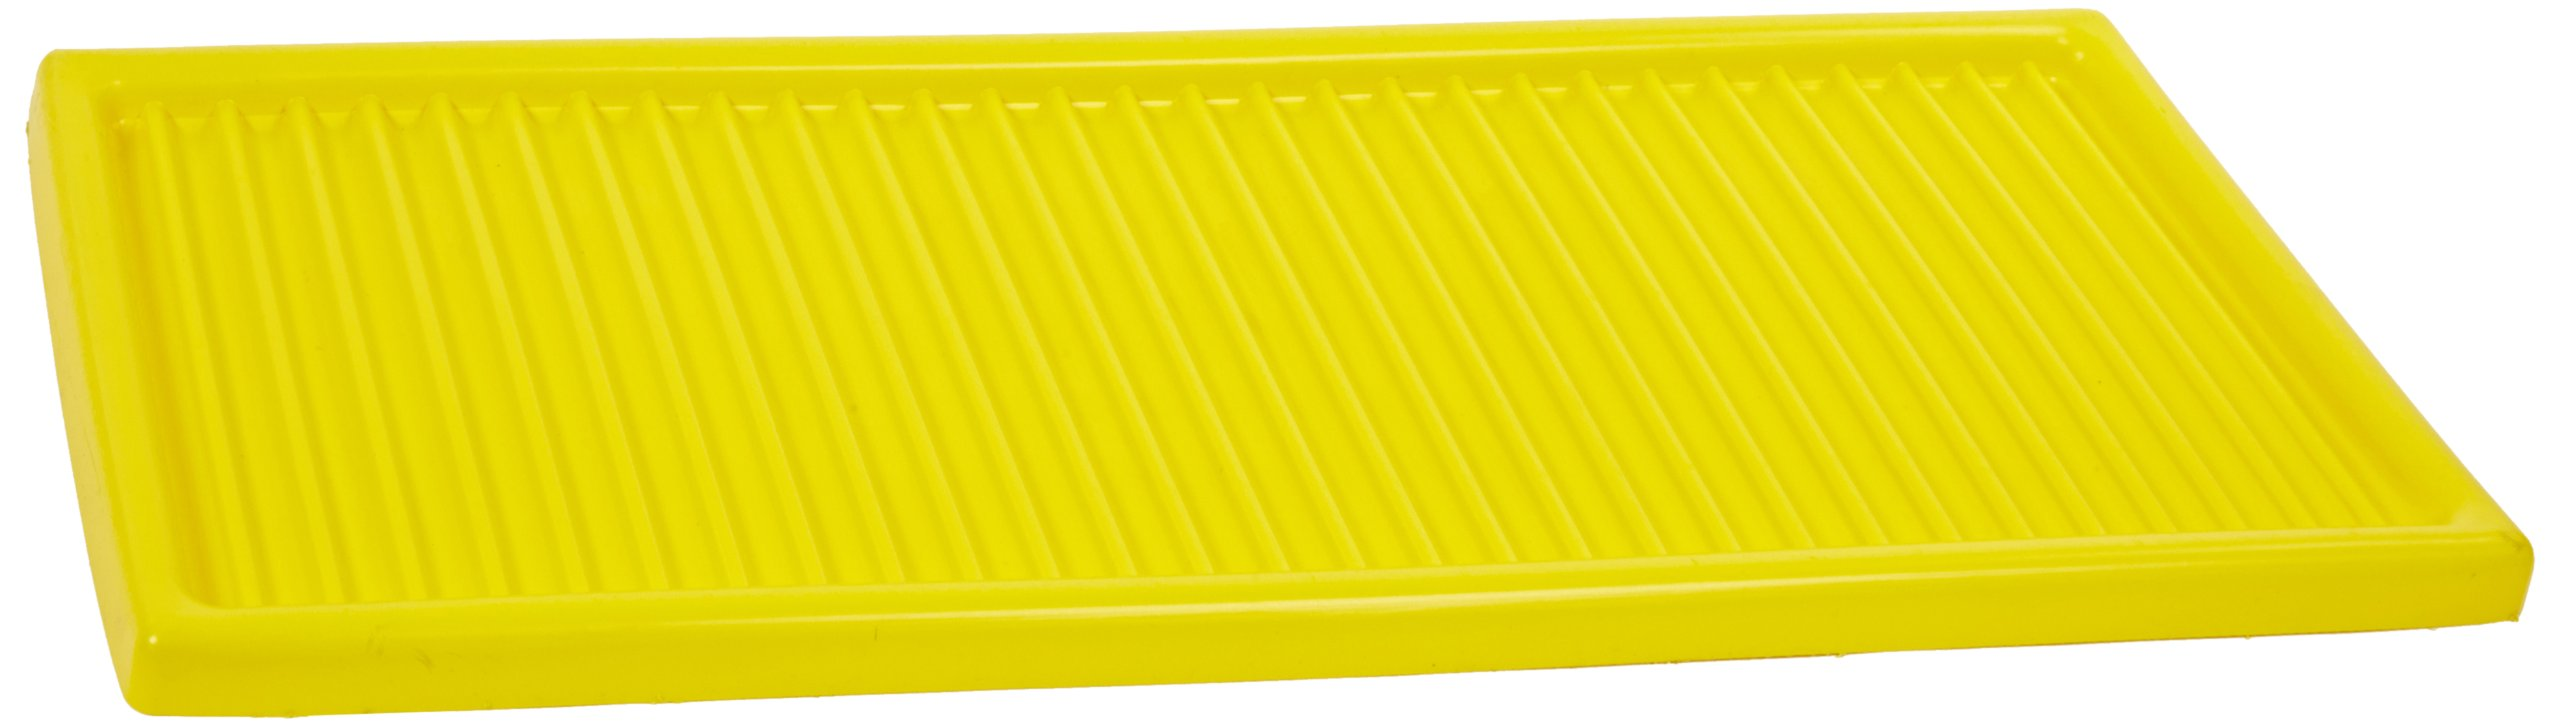 Eagle CRA-1912 Poly Bottom Tray, For CRA-30, CRA-32, CRA-45, CRA-47 and ADD-CRA Acid/Corrosive Safety Cabinets